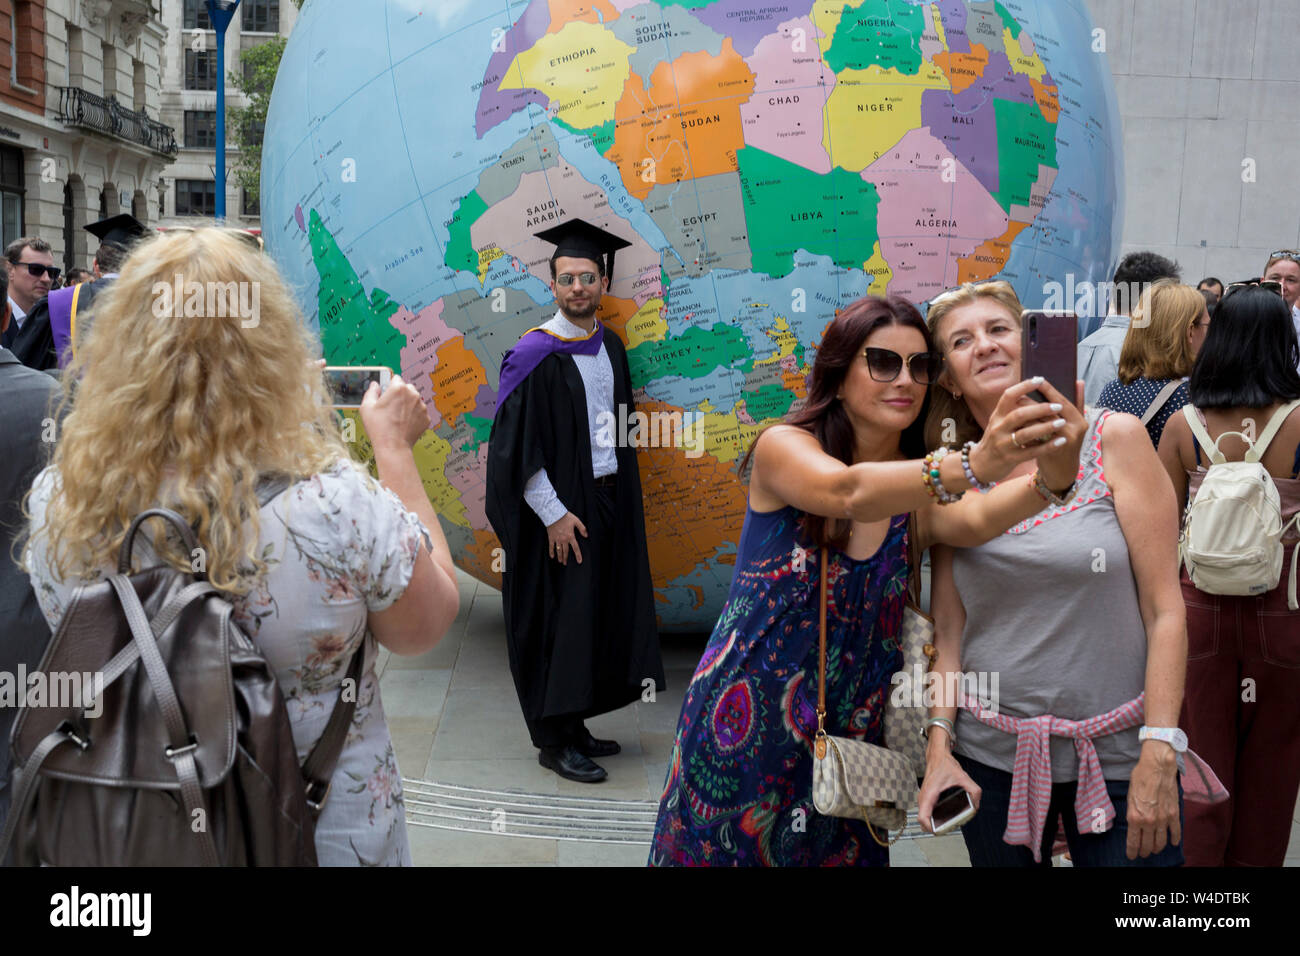 "Beneath the sculpture by Turner Prize-winning artist Mark Wallinger entitled ""The World Turned Upside Down', new graduates straight after their graduation ceremonies meet family and friends outside the London School of Economics (LSE), on 22nd July 2019, in London, England. 'The World Turned Upside Down' is a large political globe, four metres in diameter, with nation states and borders outlined but with the simple and revolutionary twist of being inverted. Most of the landmasses now lie in the 'bottom' hemisphere with the countries and cities re-labelled for this new orientation. Stock Photo"